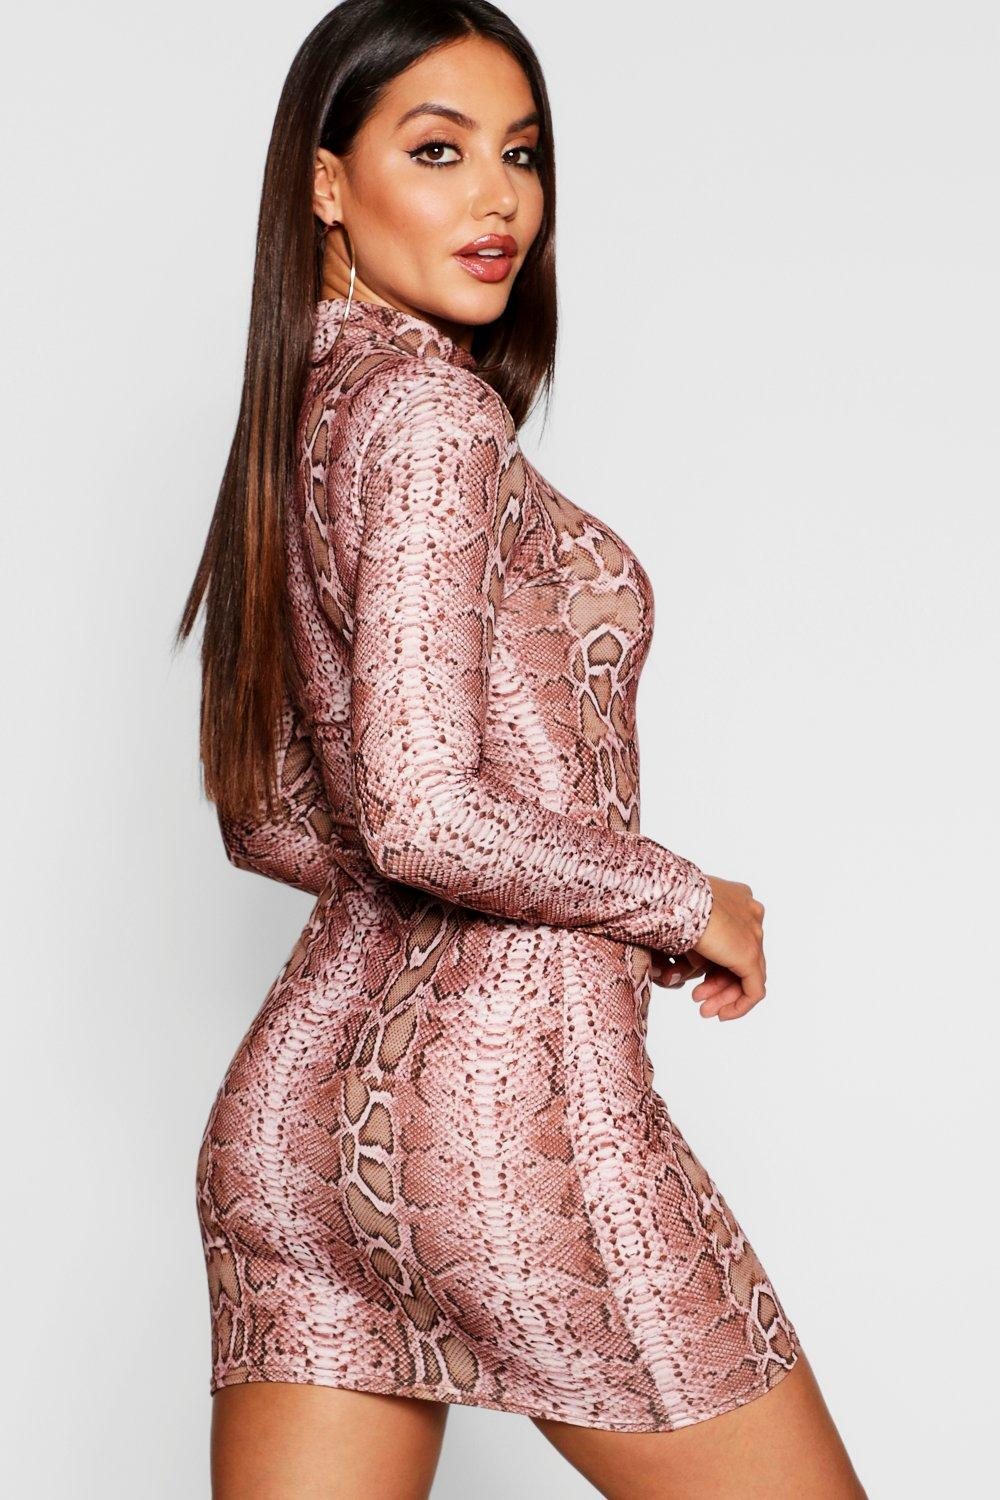 f8d1a622b43 ... Snake Print Mini Dress. Hover to zoom